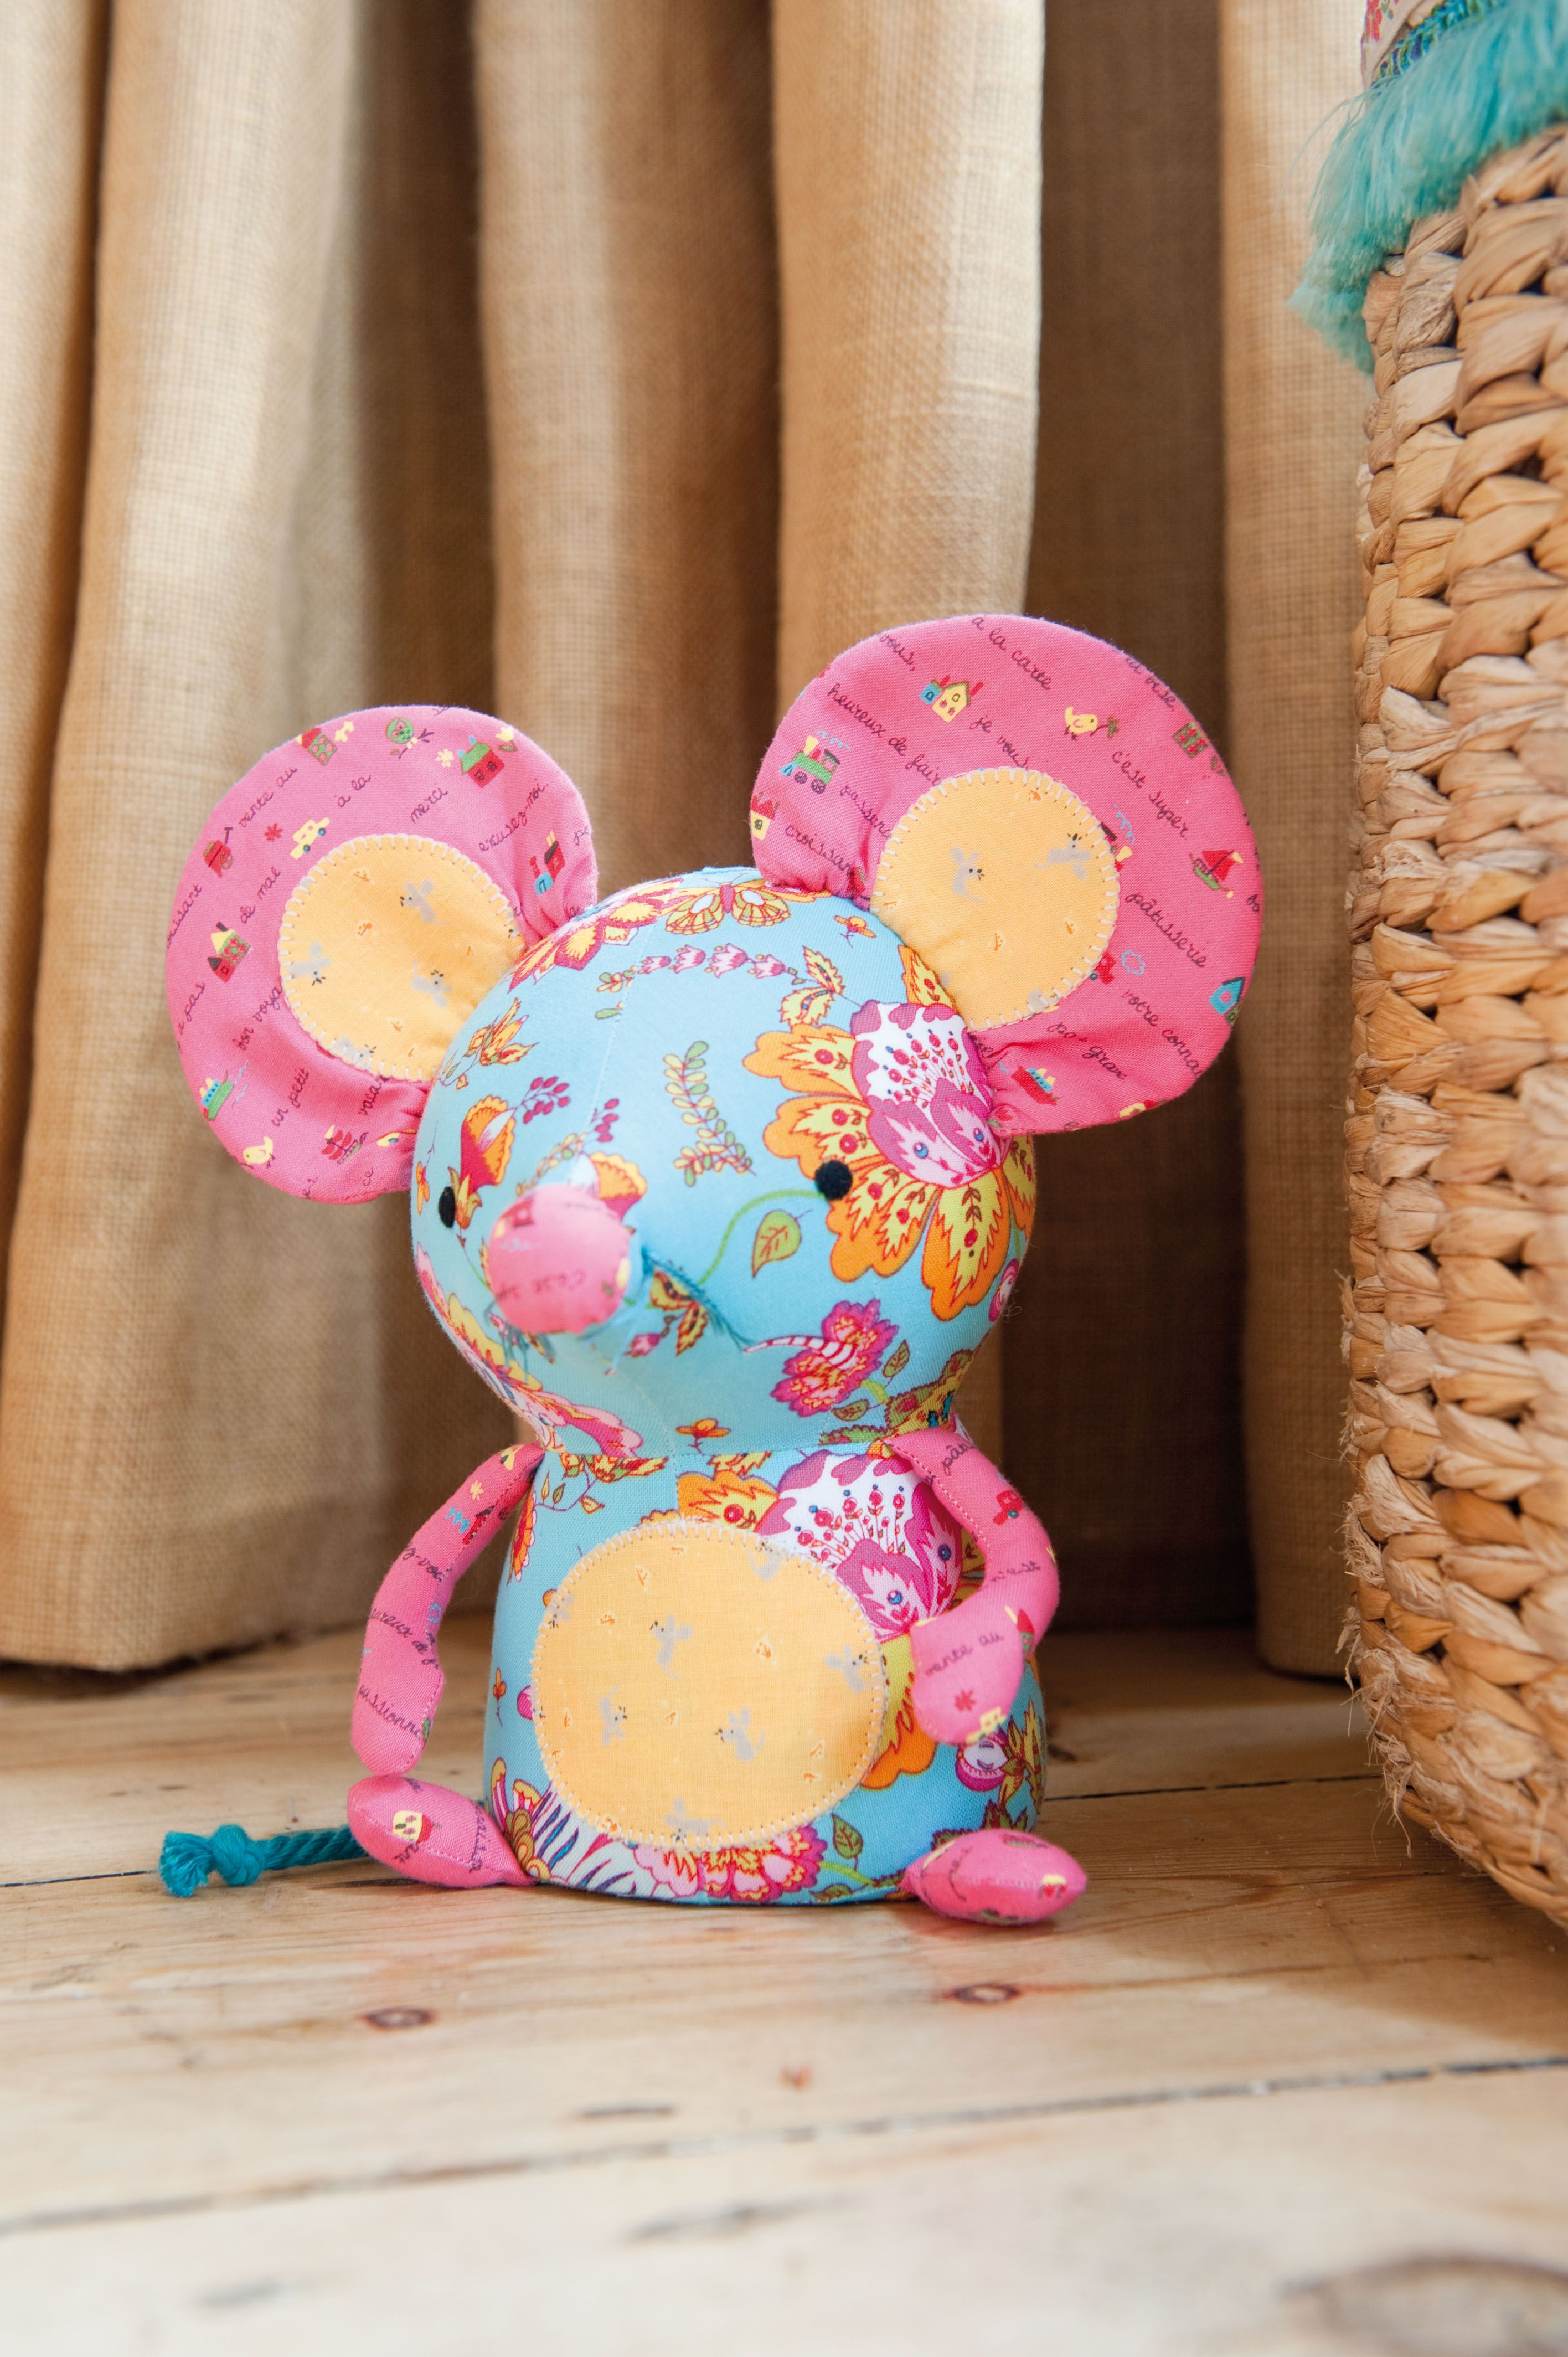 http://ideas.stitchcraftcreate.co.uk/wp-content/uploads/2013/01/Toy-Sewing-Patterns-Mouse.jpg